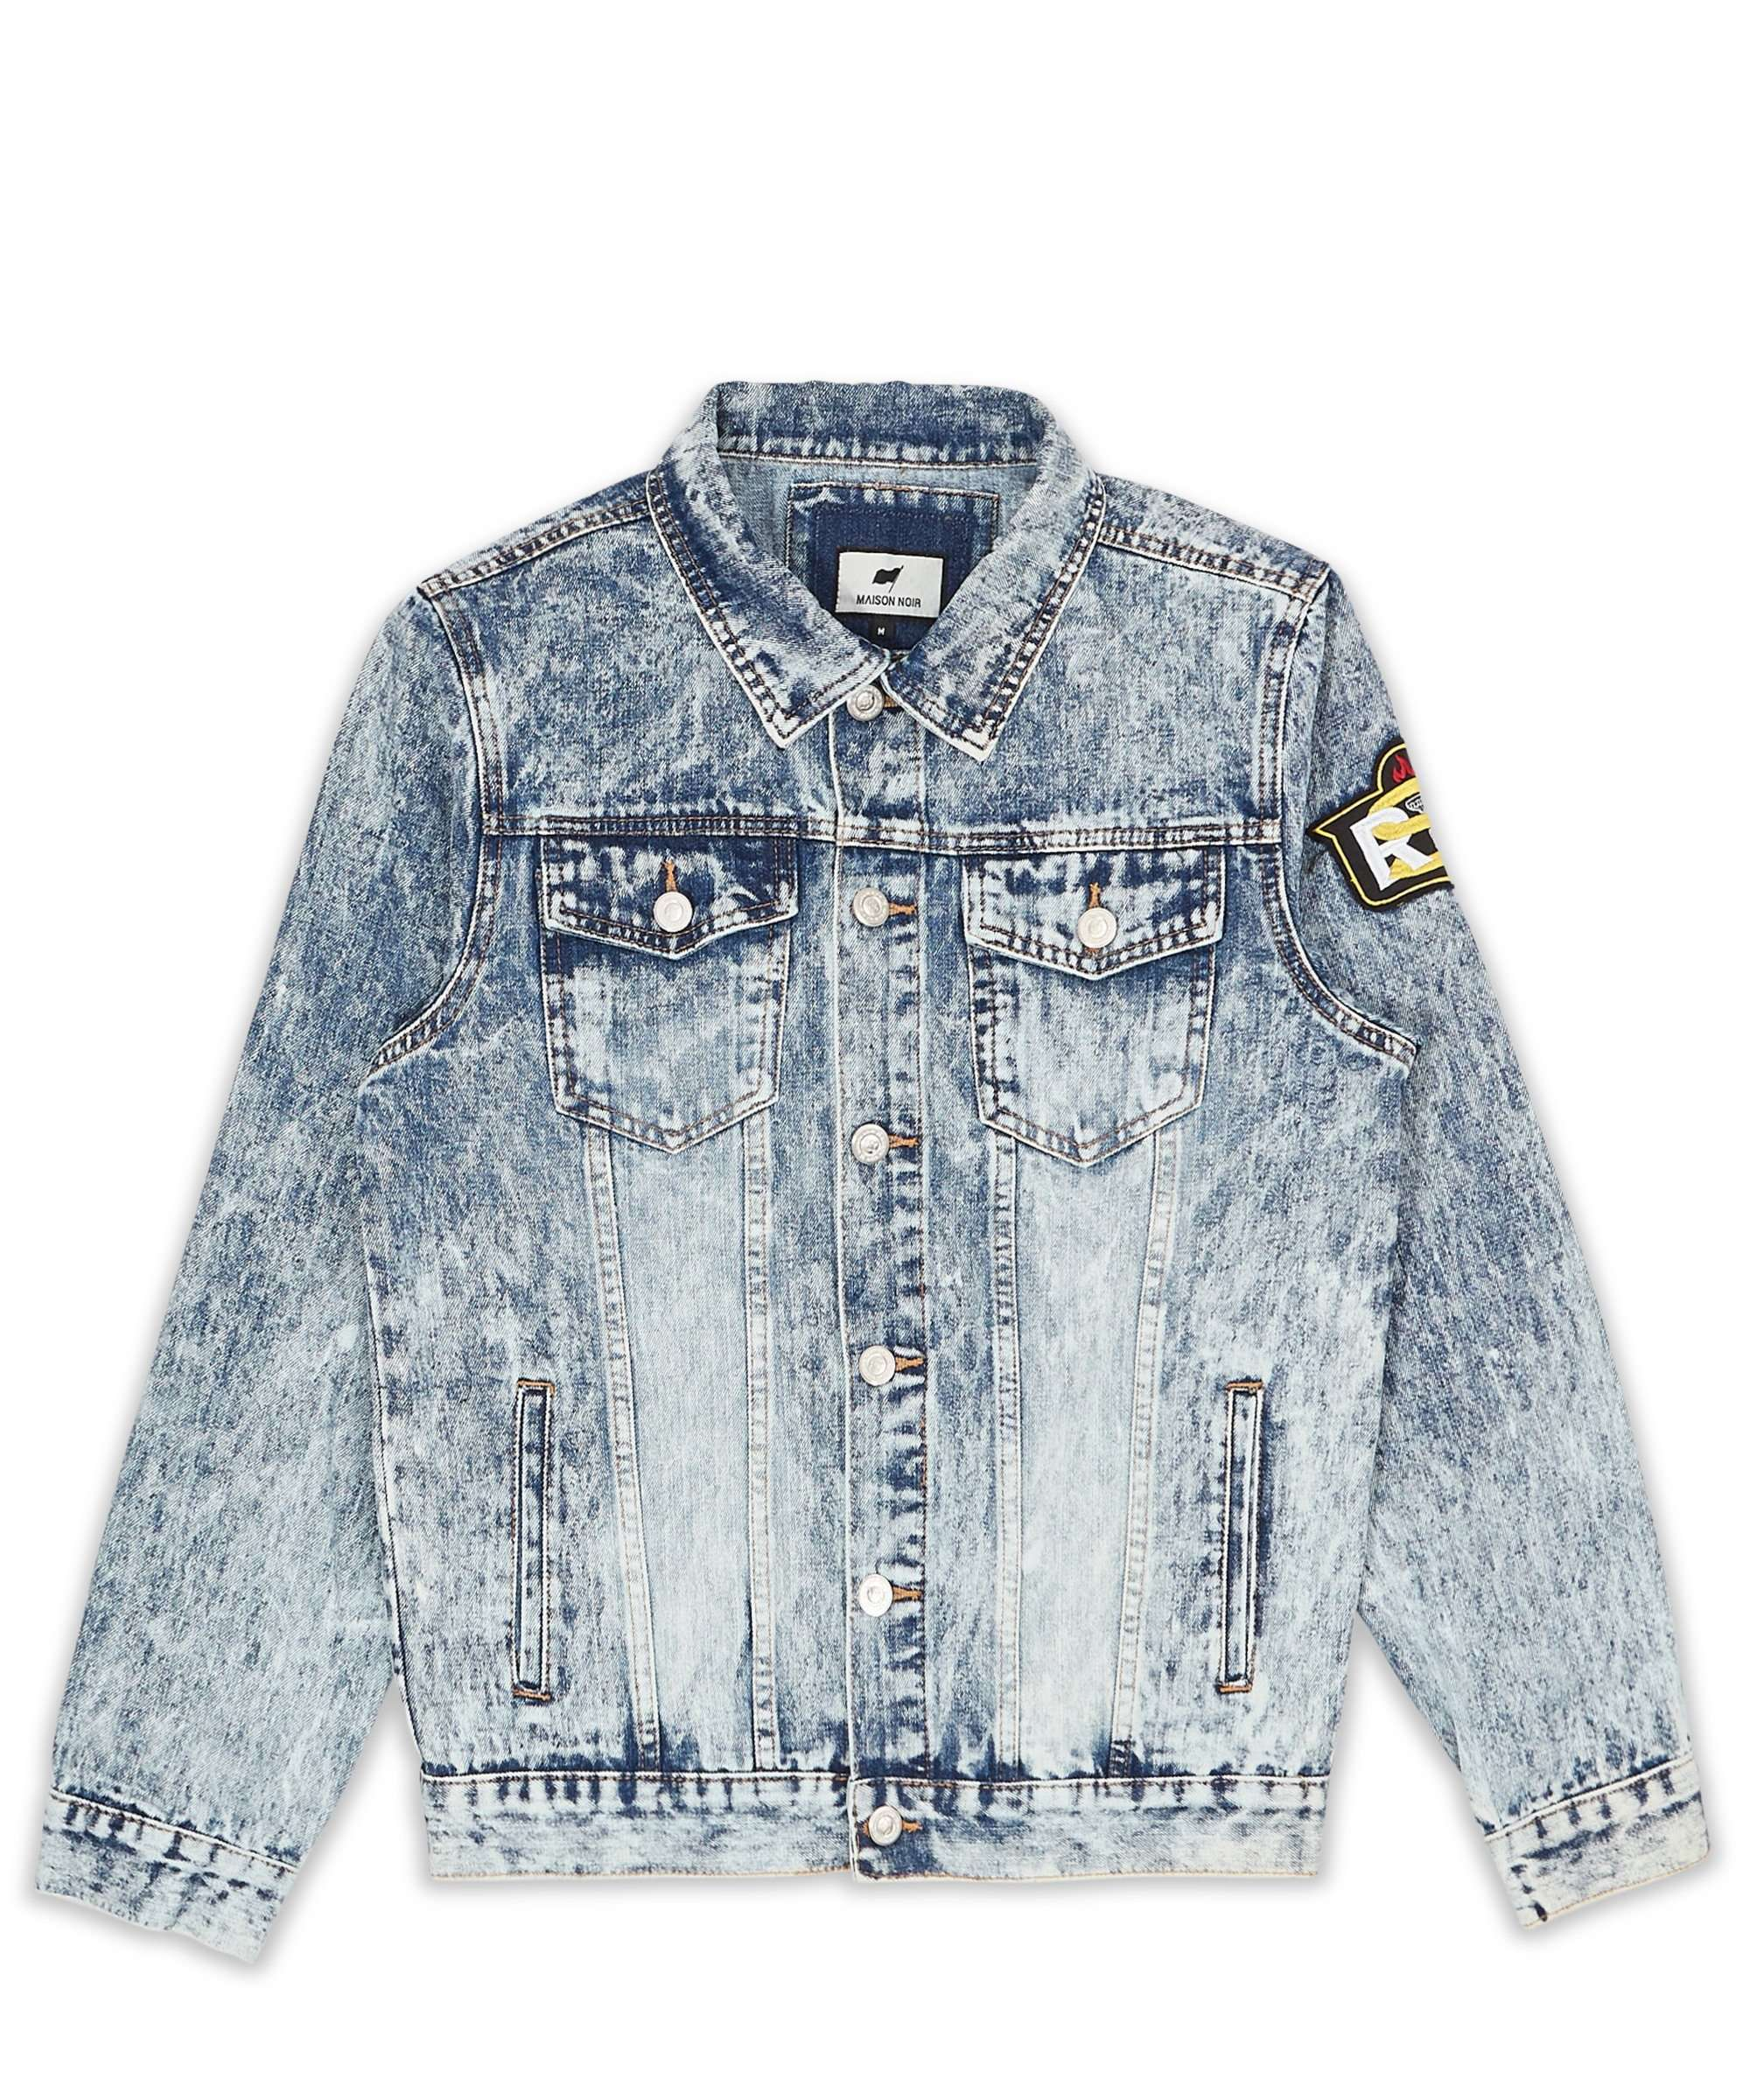 HAZE DENIM JACKET MAISON NOIR